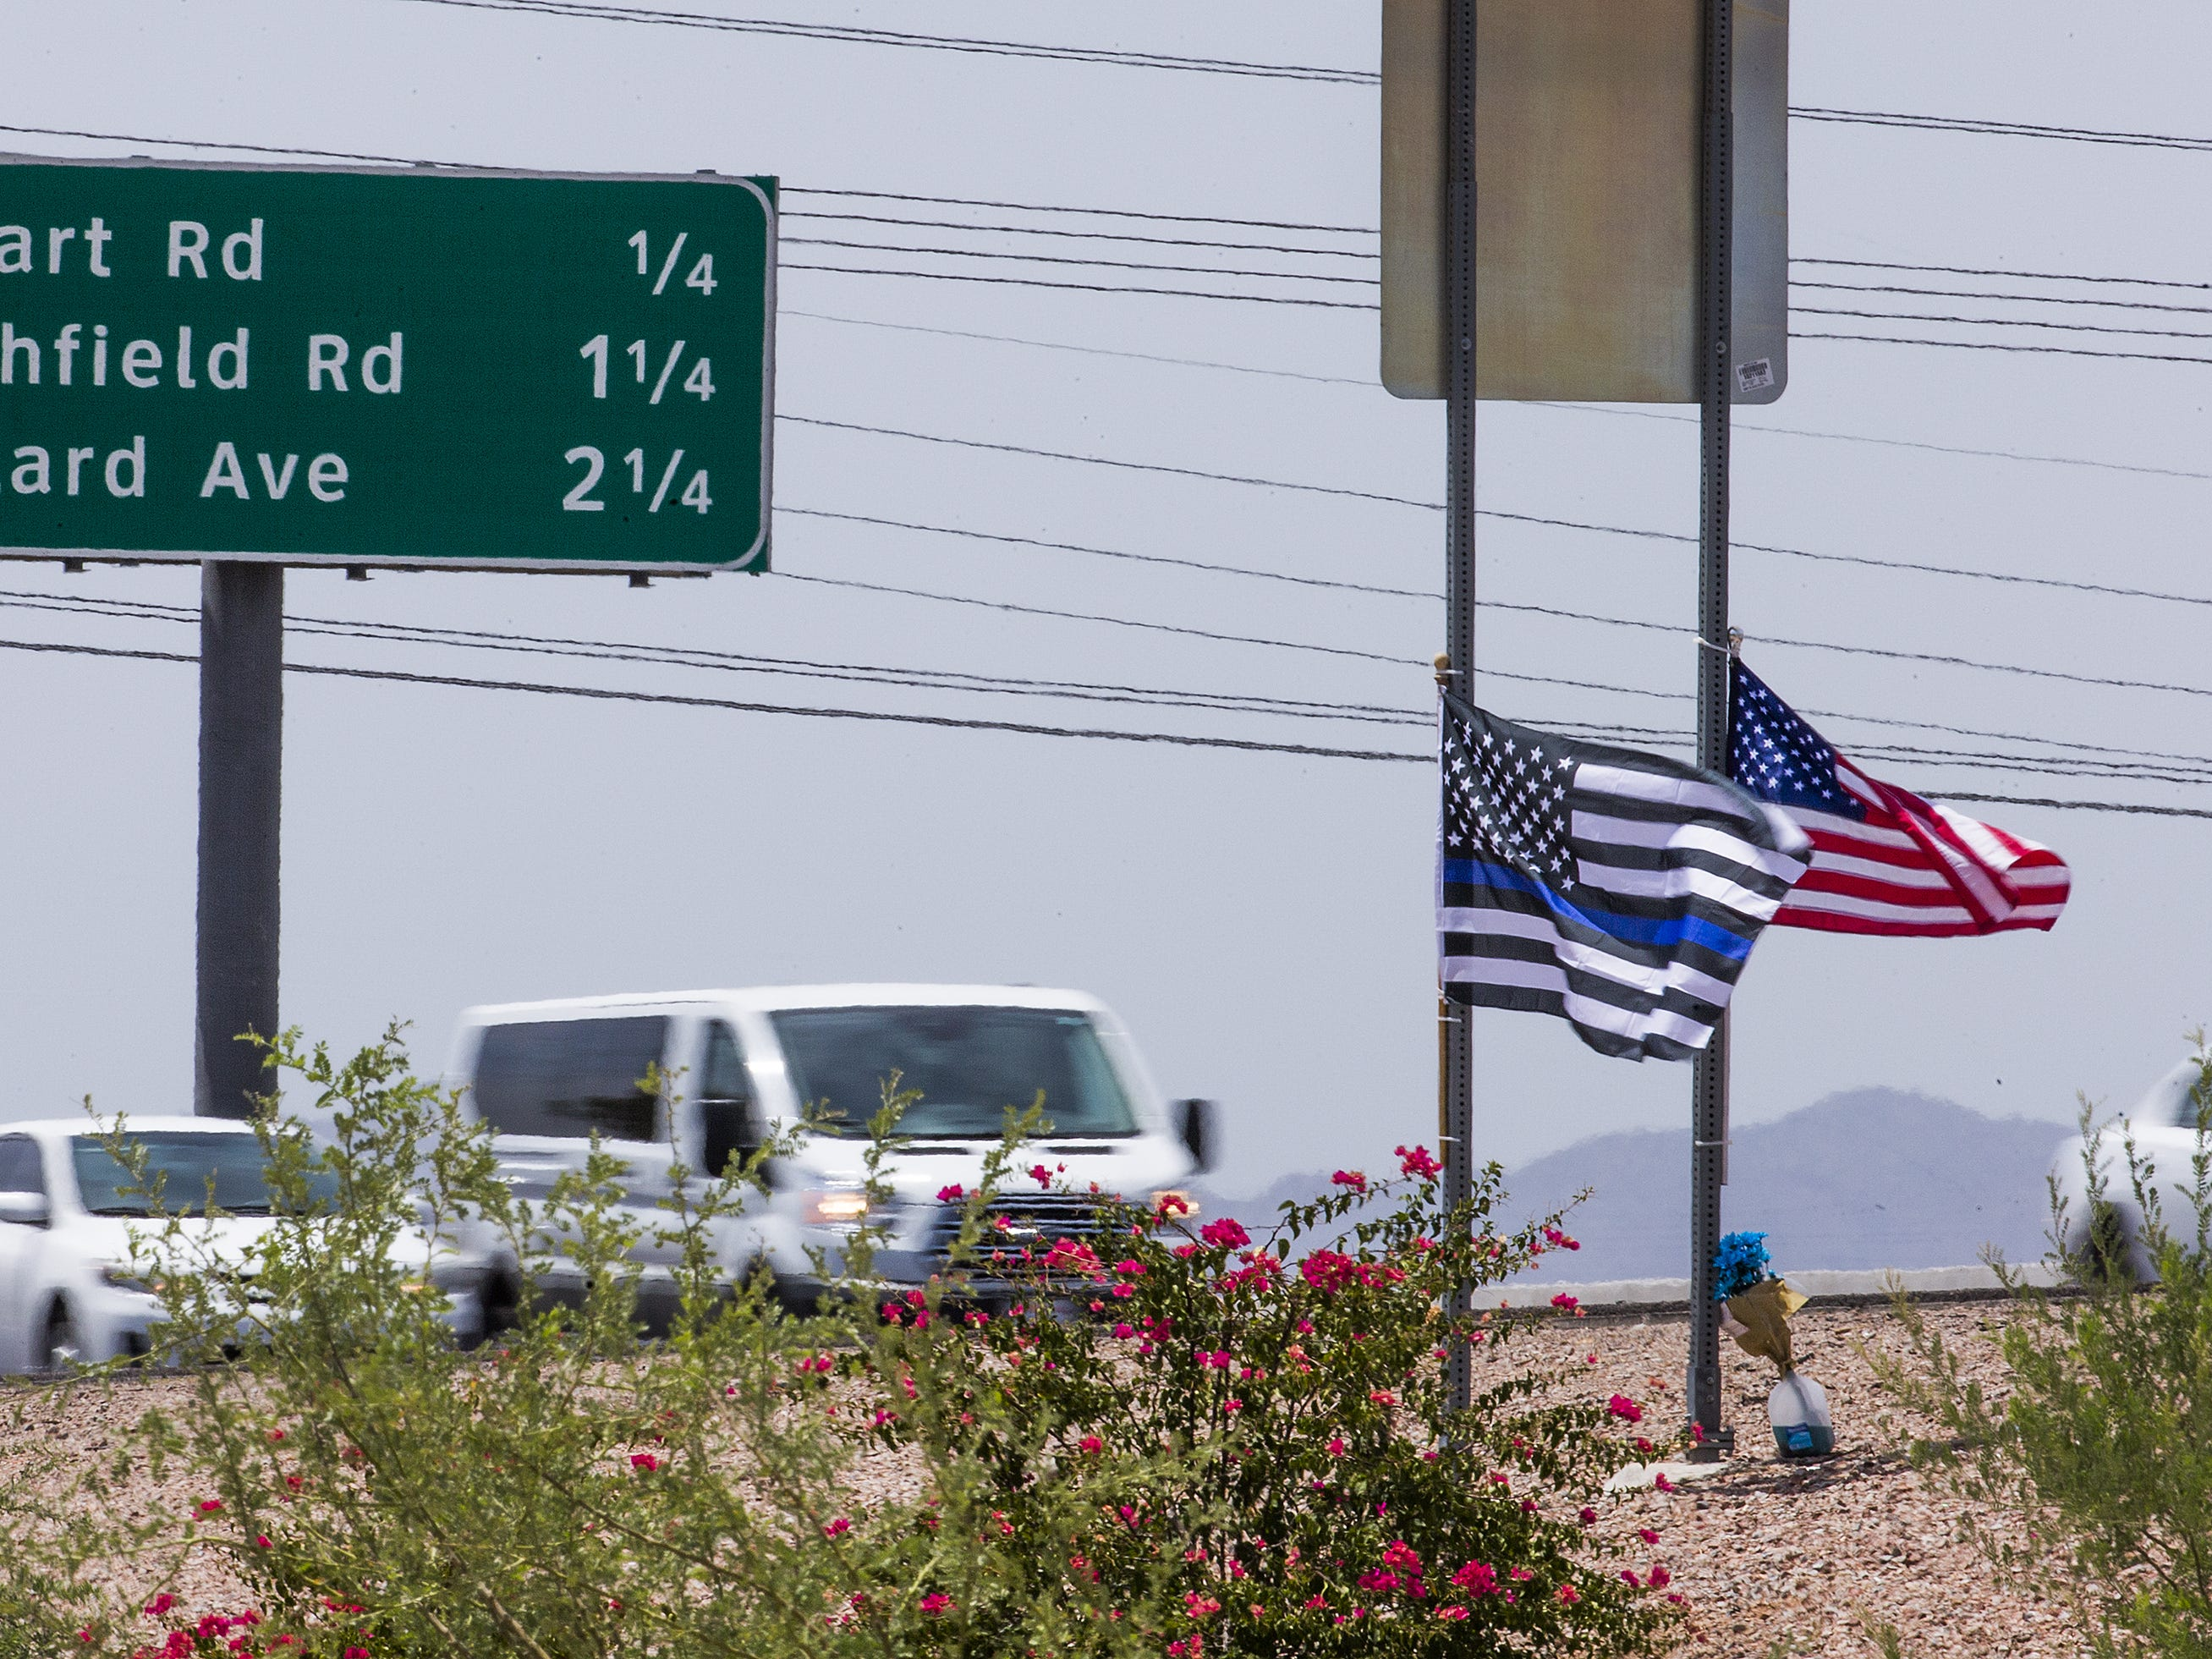 Flowers and flags mark the area where Arizona Department of Public Safety Trooper Tyler Edenhofer was killed and another trooper was shot and injured during an altercation in the eastbound lanes of I-10, west of Avondale Blvd., July 25, 2018.